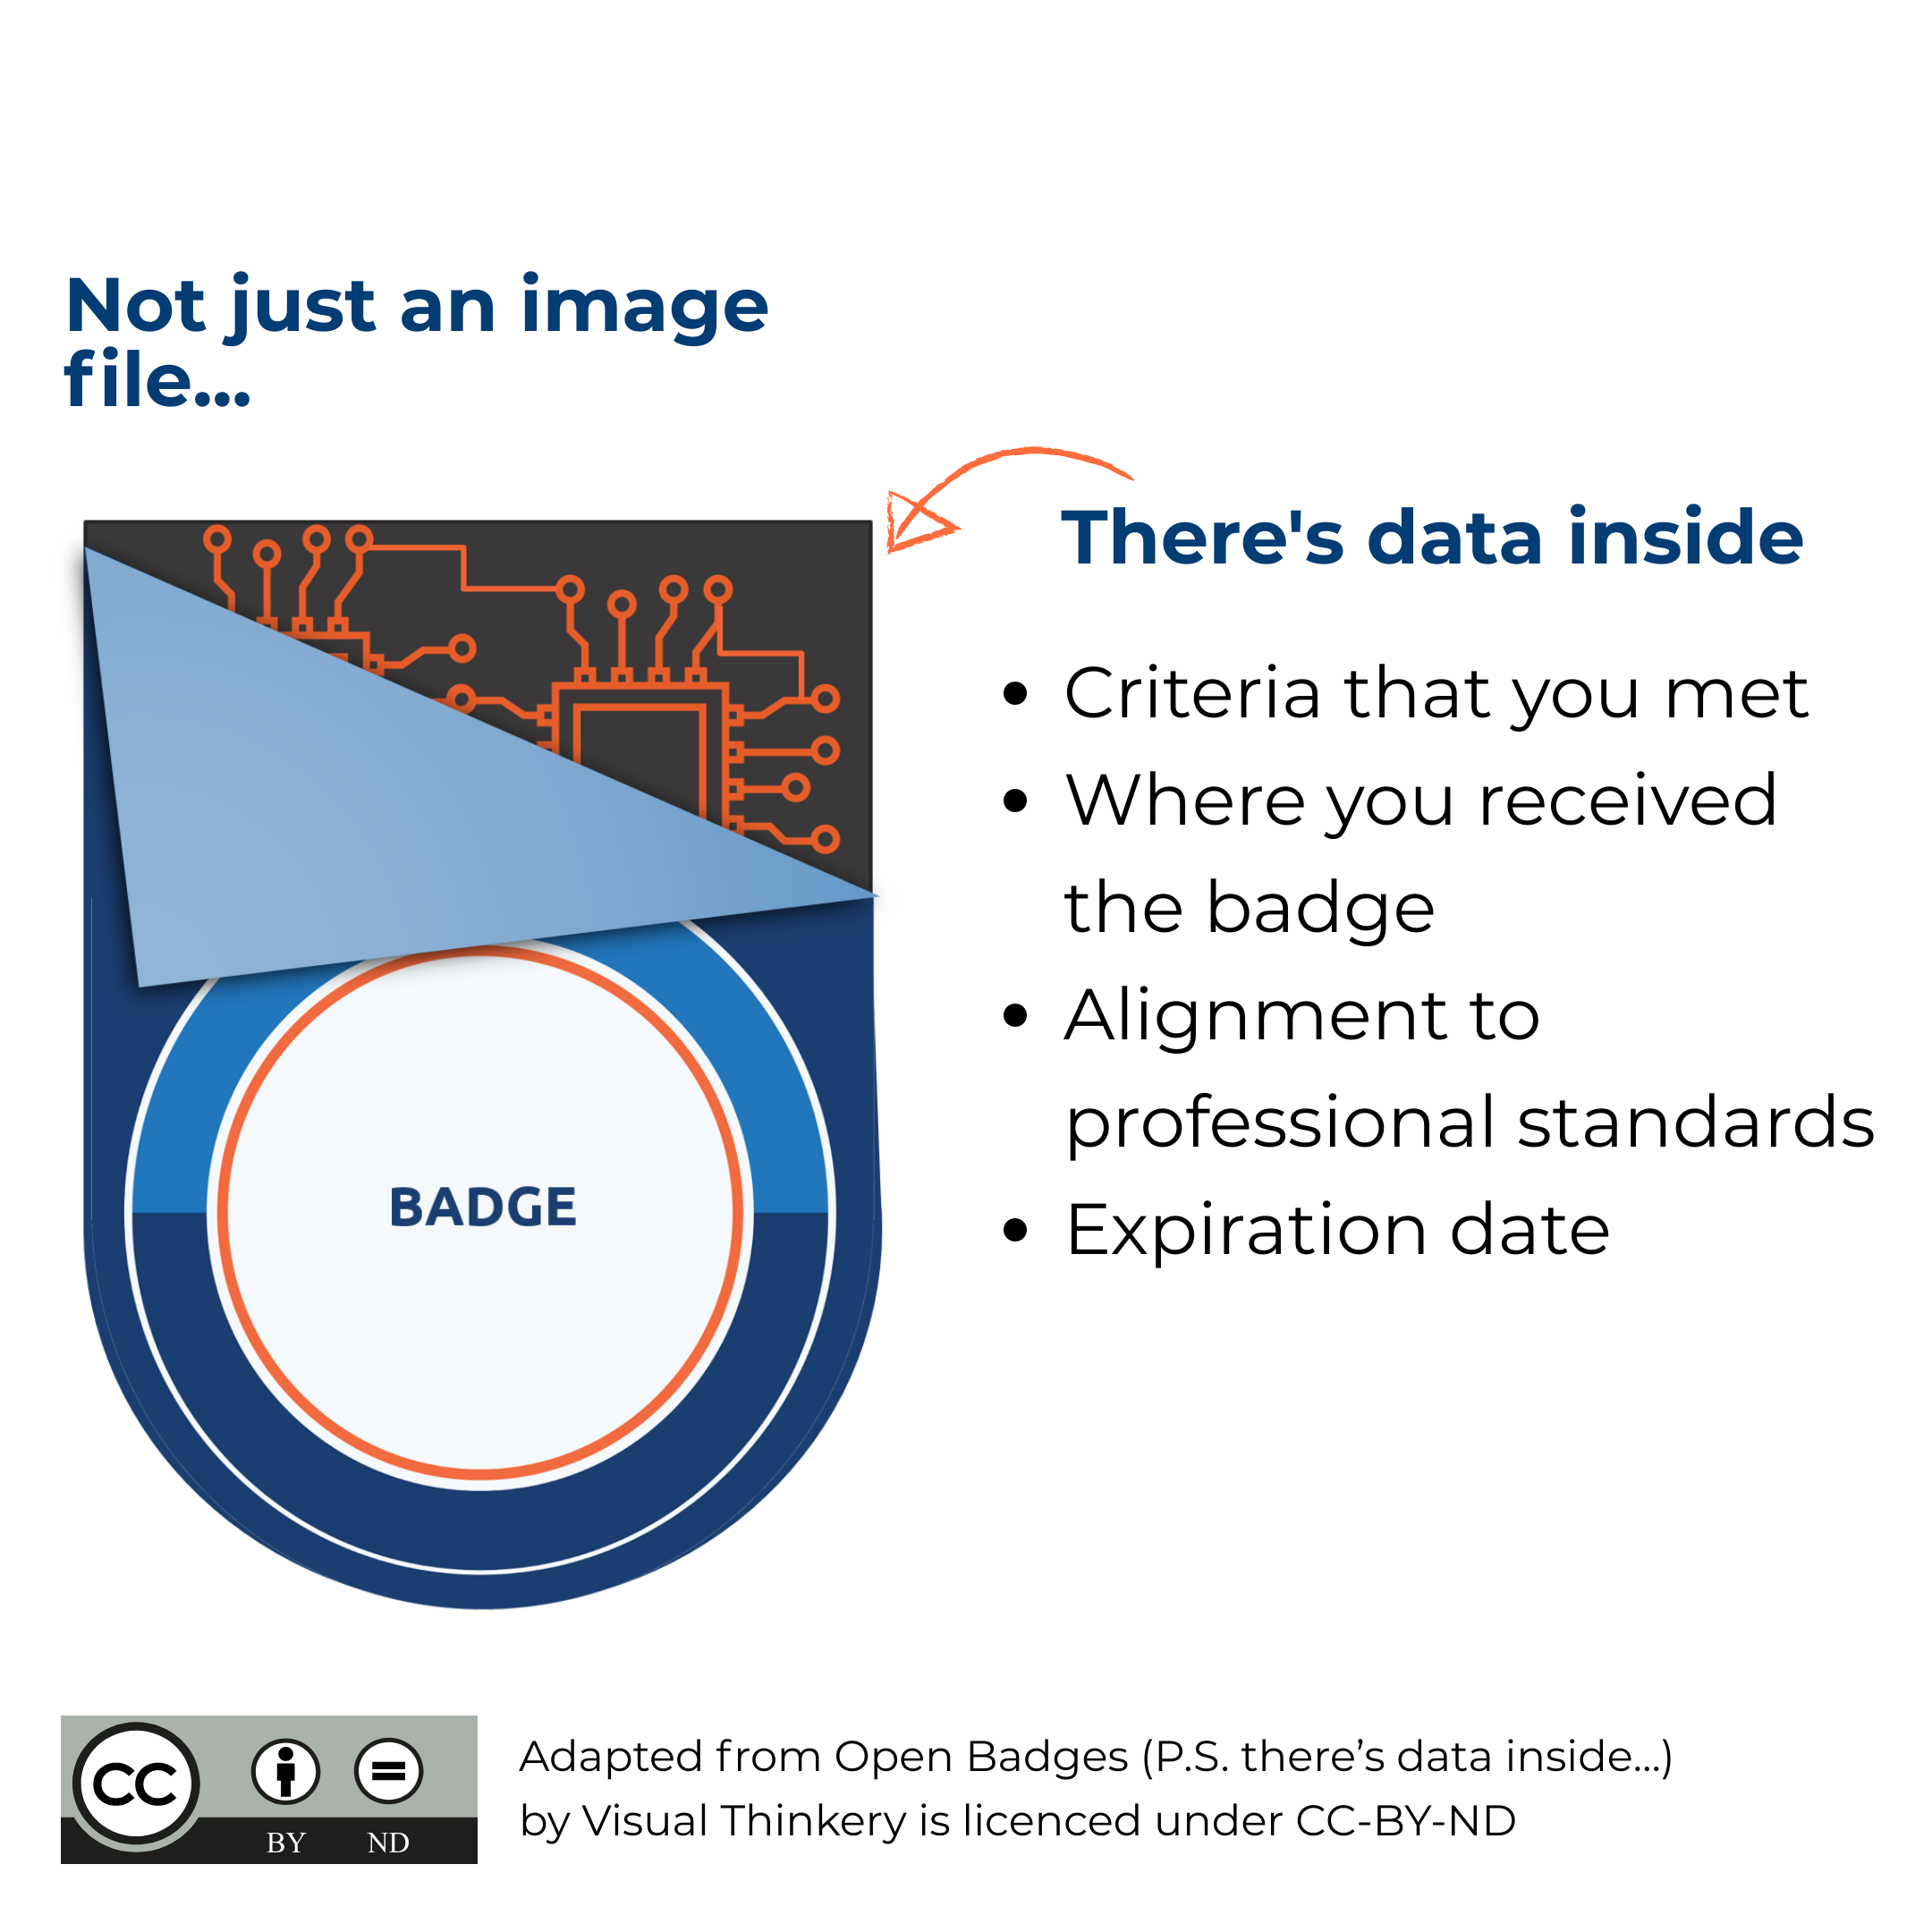 Behind the Badge, there's data inside.